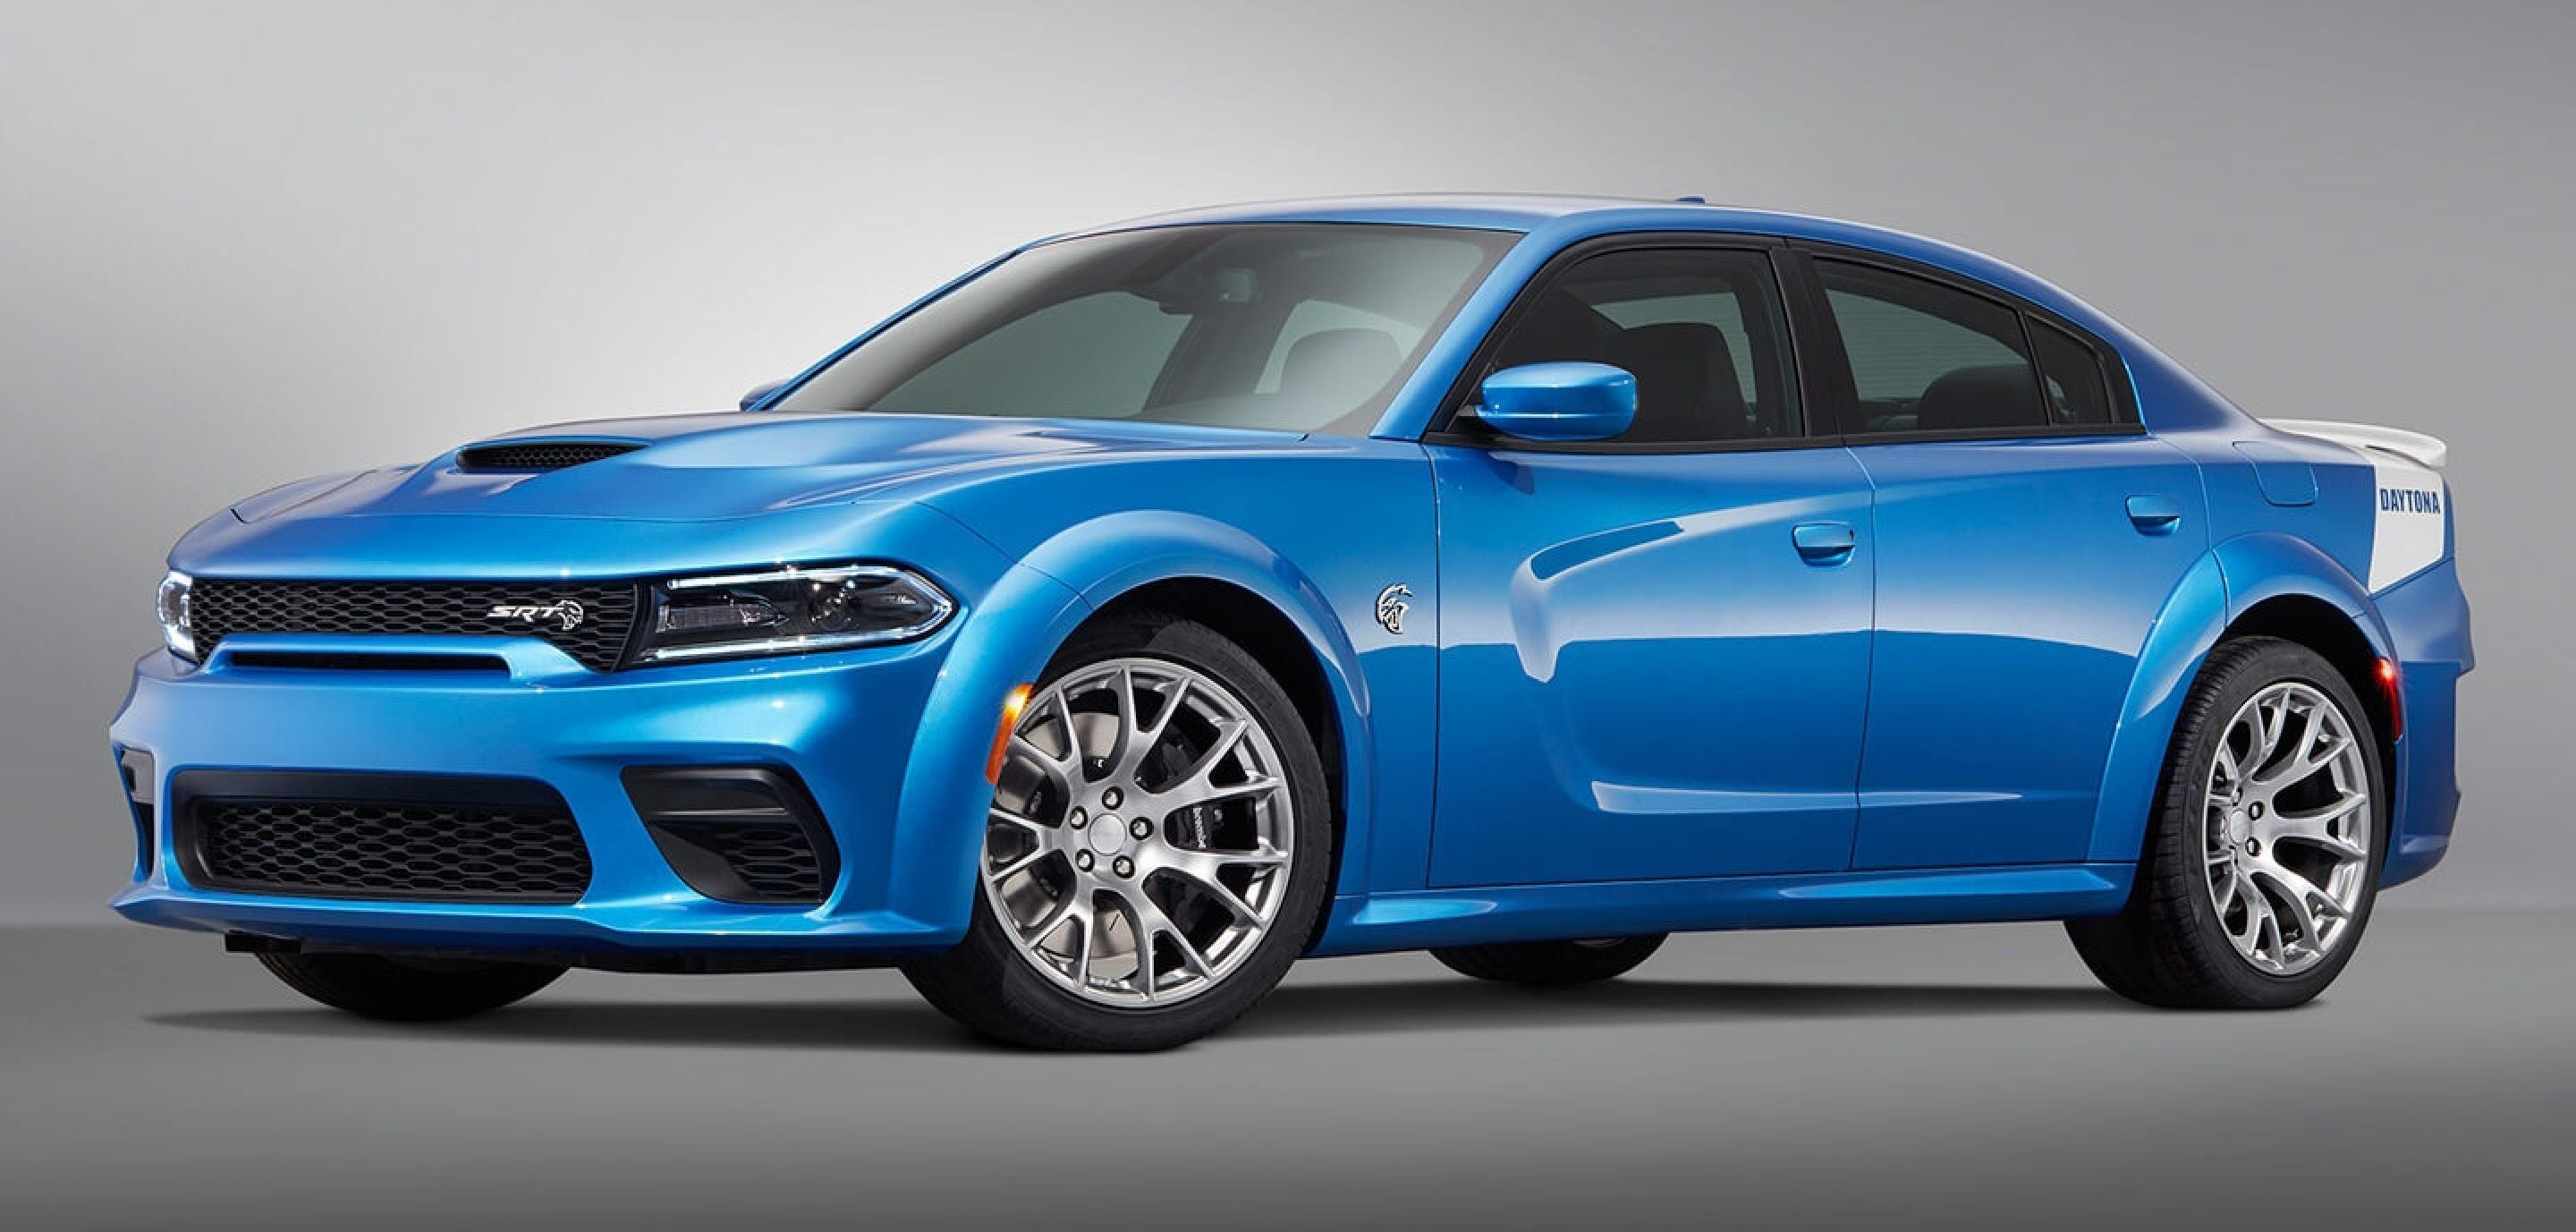 2020 Dodge Charger For Sale 2020 Dodge Charger Review